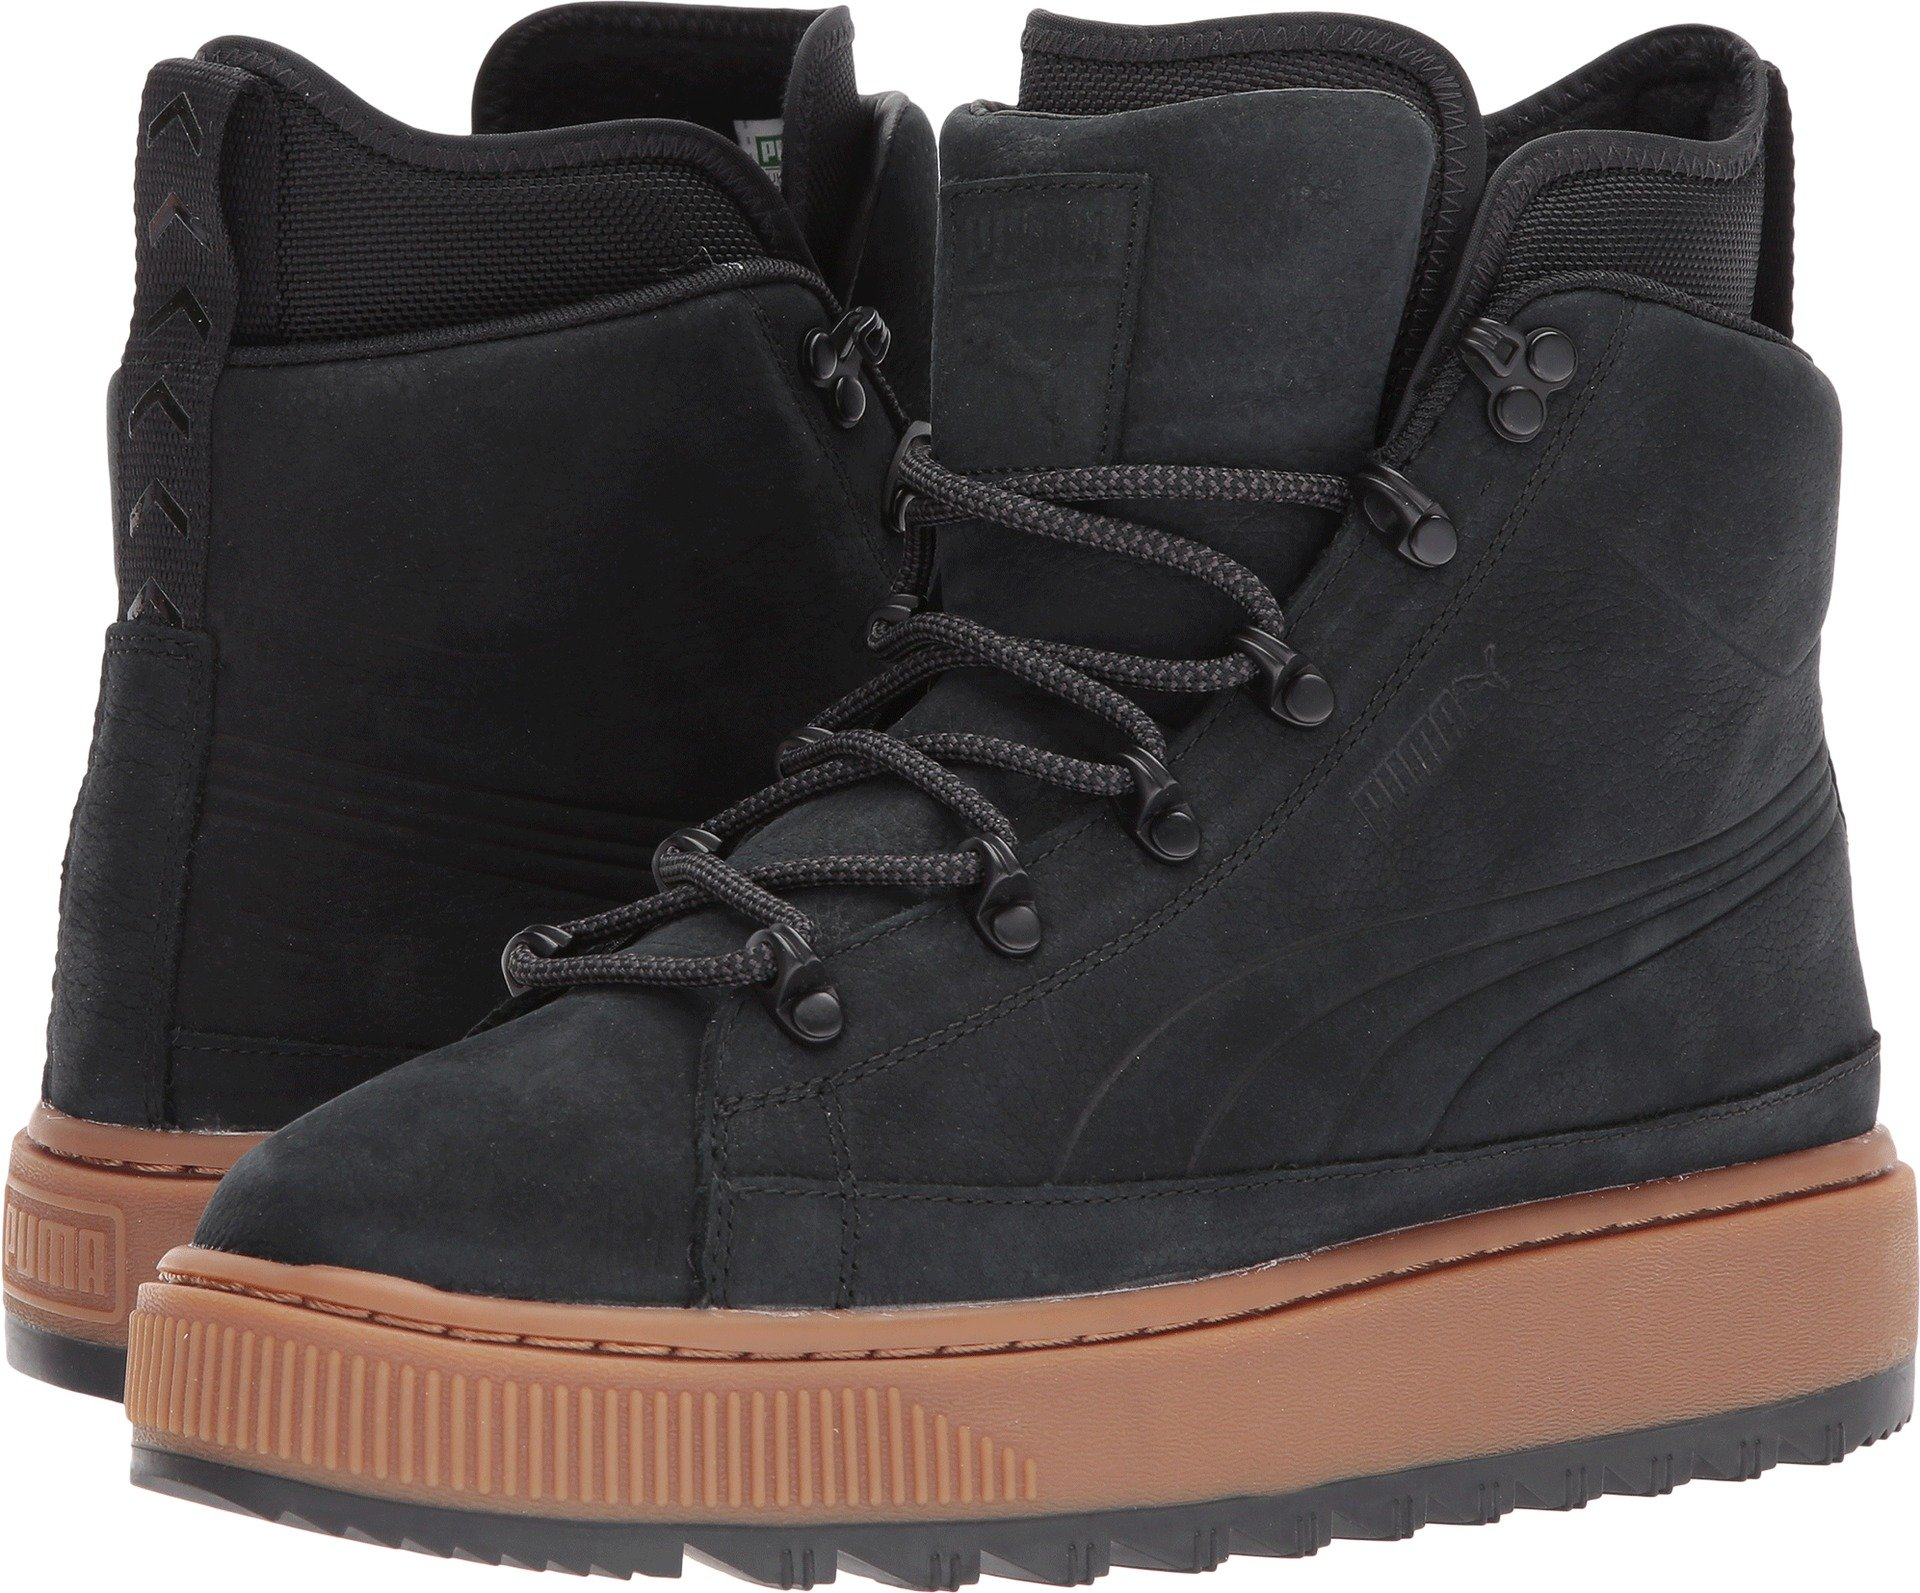 PUMA Men's The Ren Boot NBK Sneaker, Black, 11.5 M US